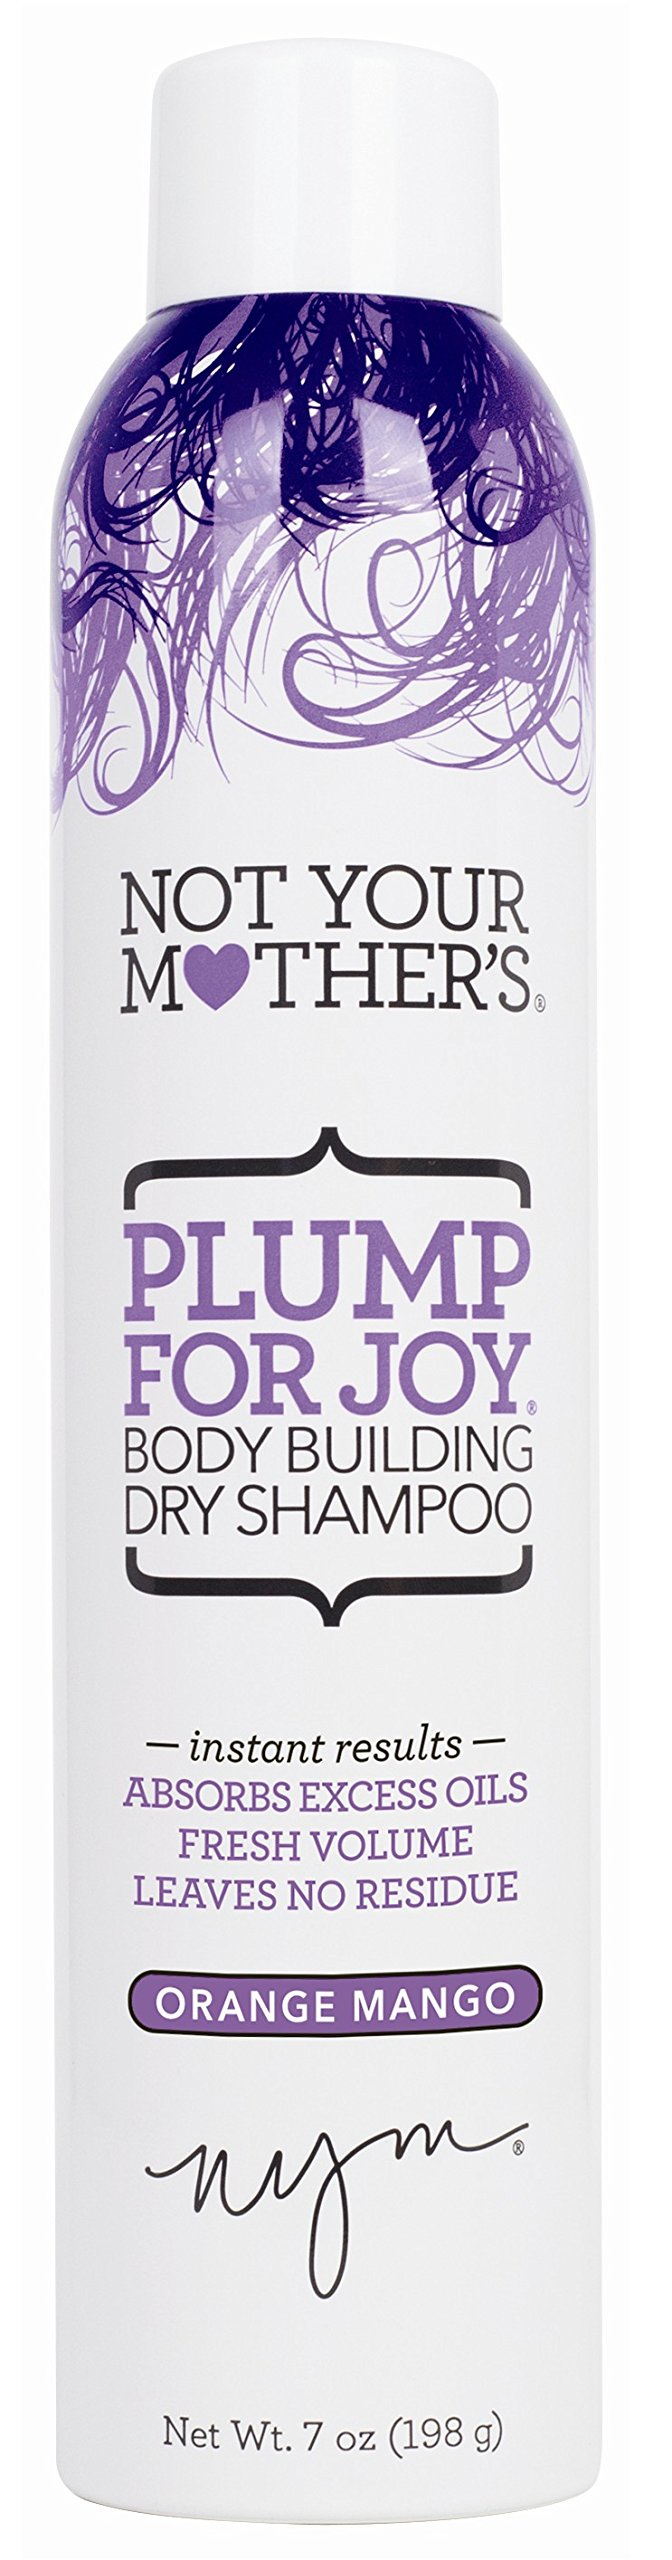 Not Your Mothers Shampoo Dry Plump For Joy 7 Ounce Body (207ml) (6 Pack) by Not Your Mother's